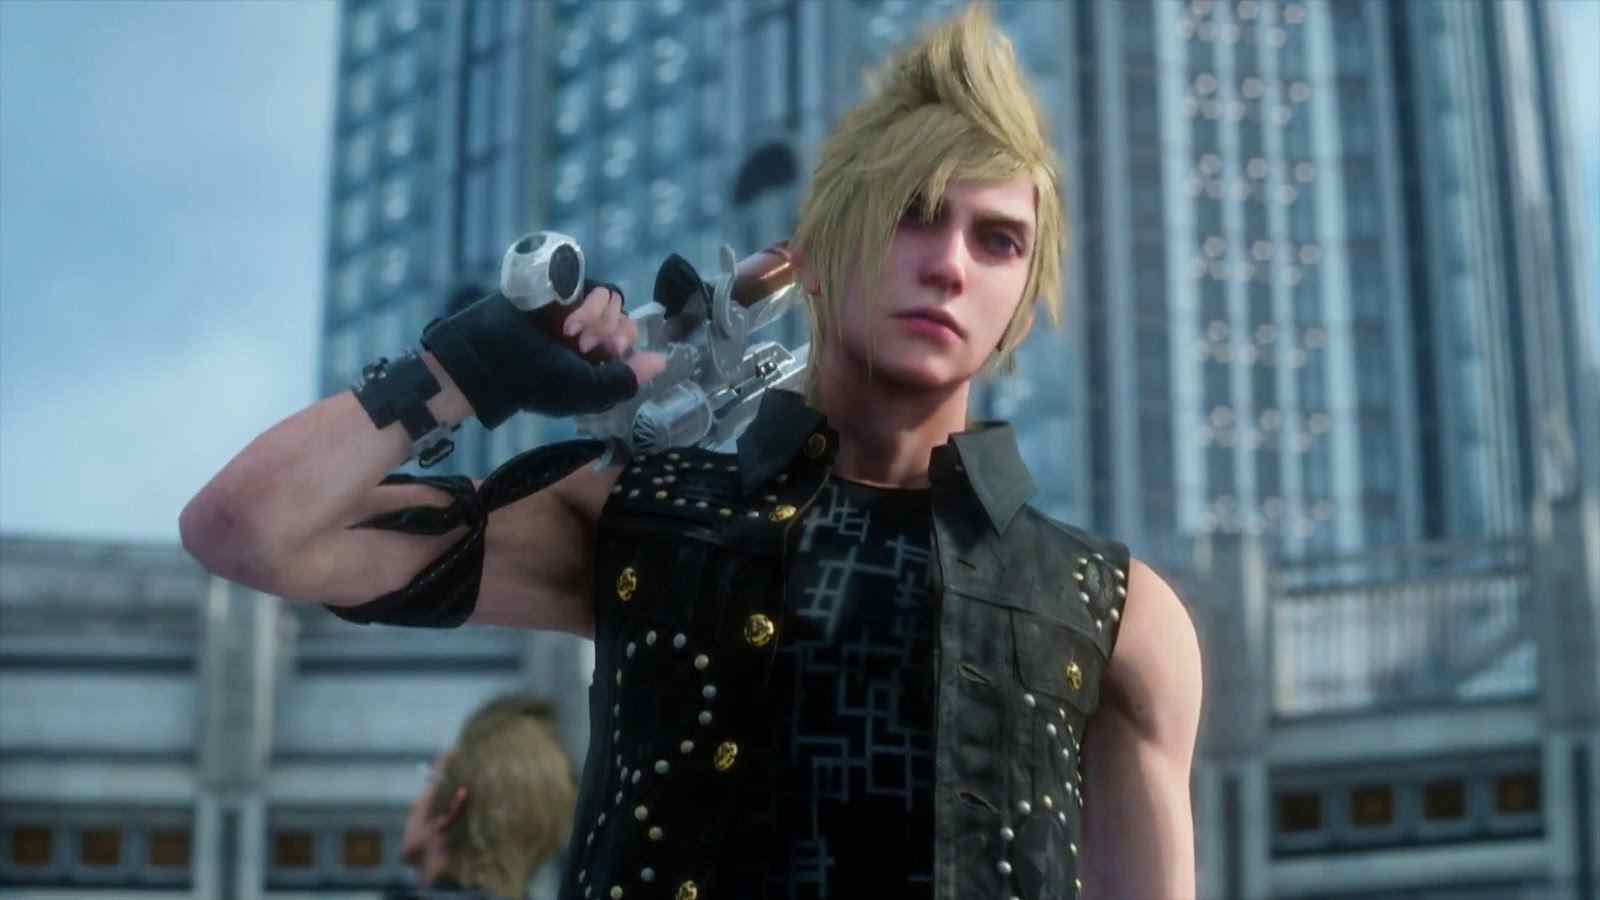 Final Fantasy XV Images Promptos New Design HD Wallpaper And Background Photos